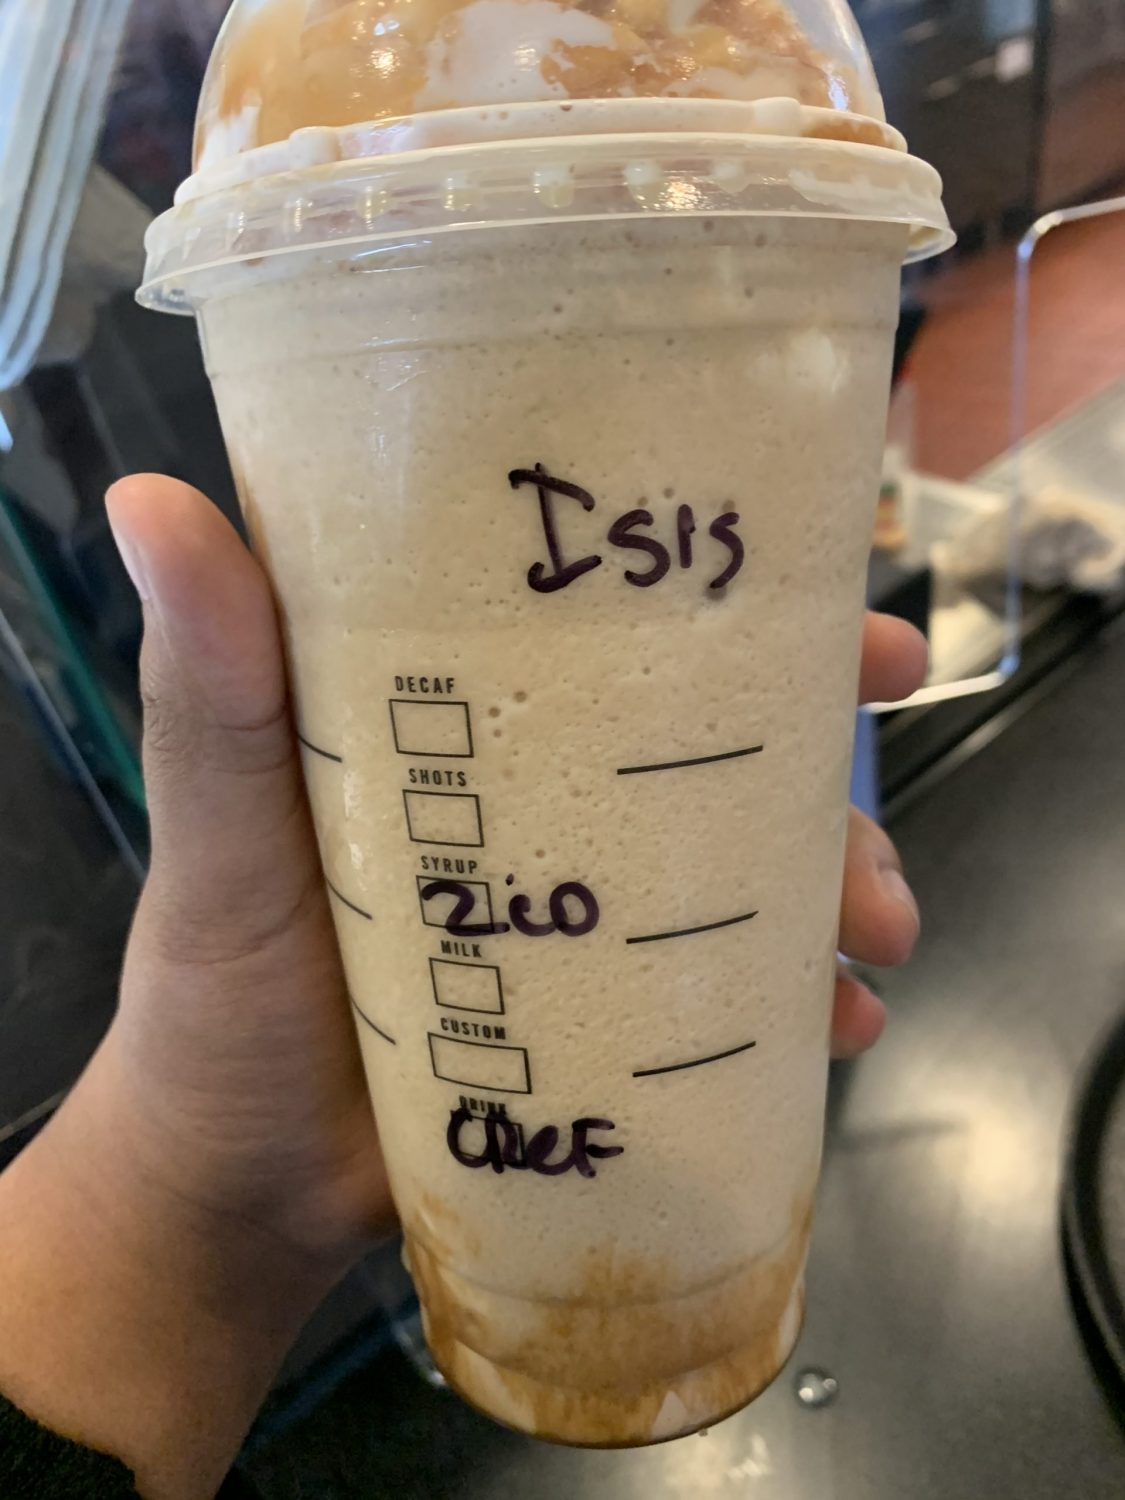 minnesota starbucks barista allegedly wrote isis on muslim woman's drink